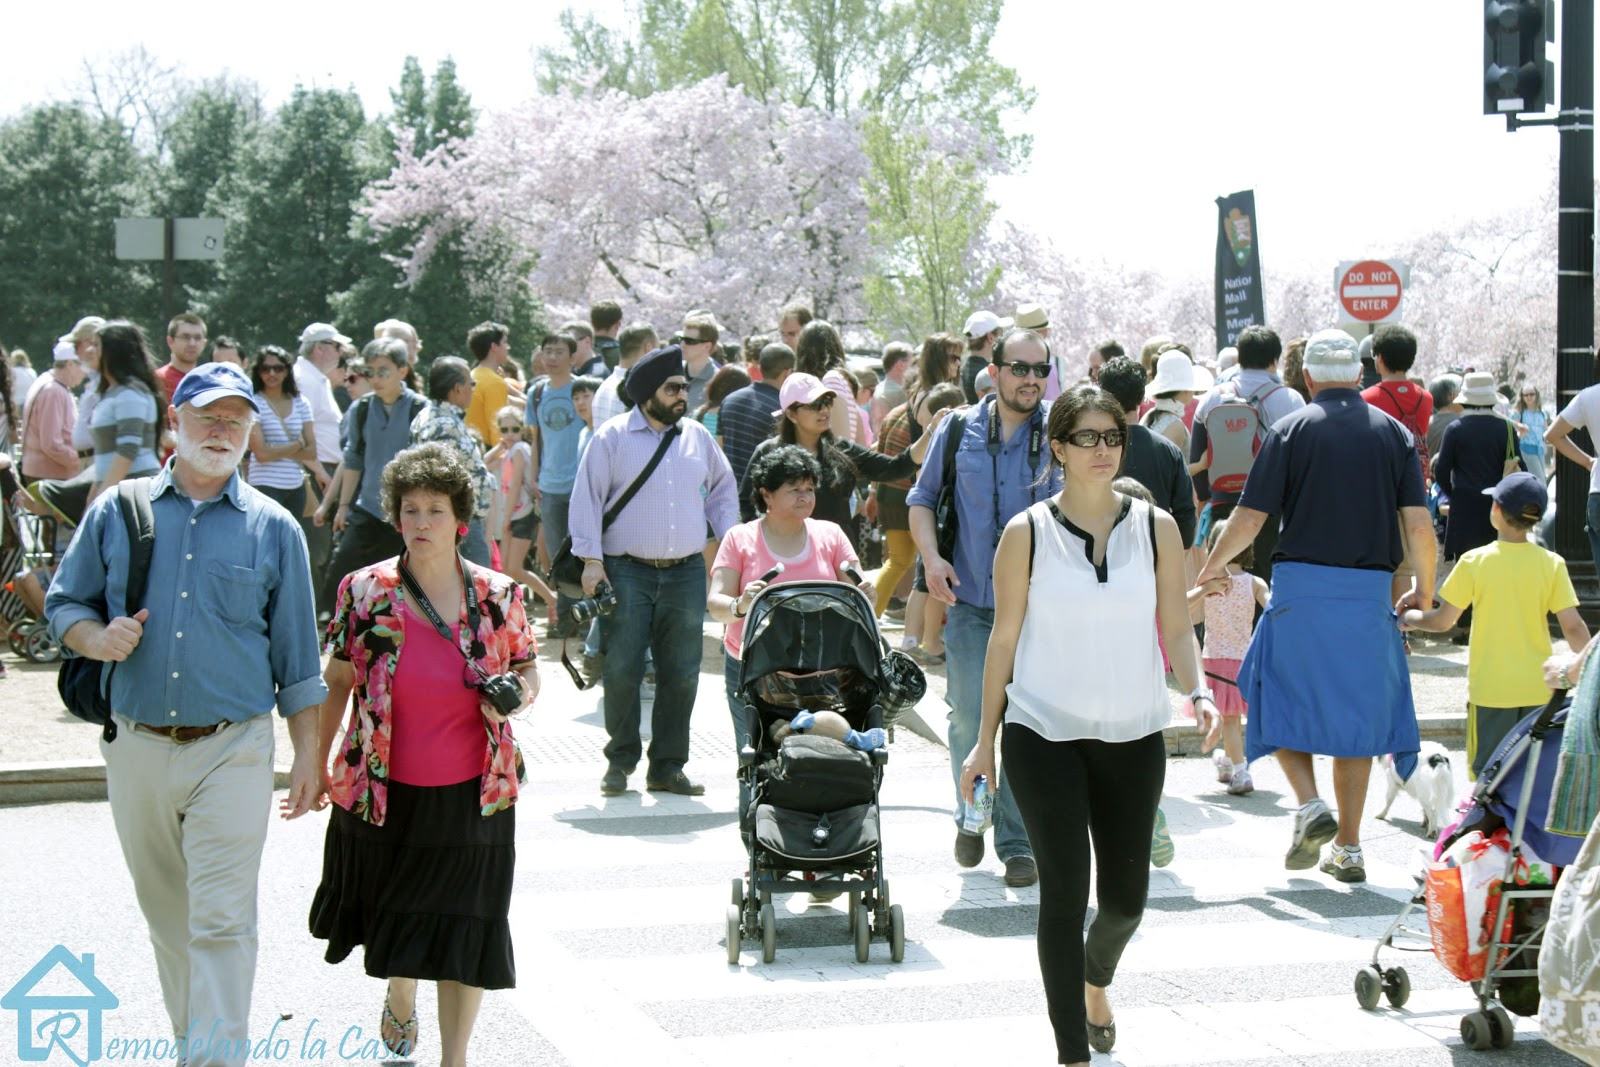 Lots of people from all around the globe during cherry blossom festival in DC